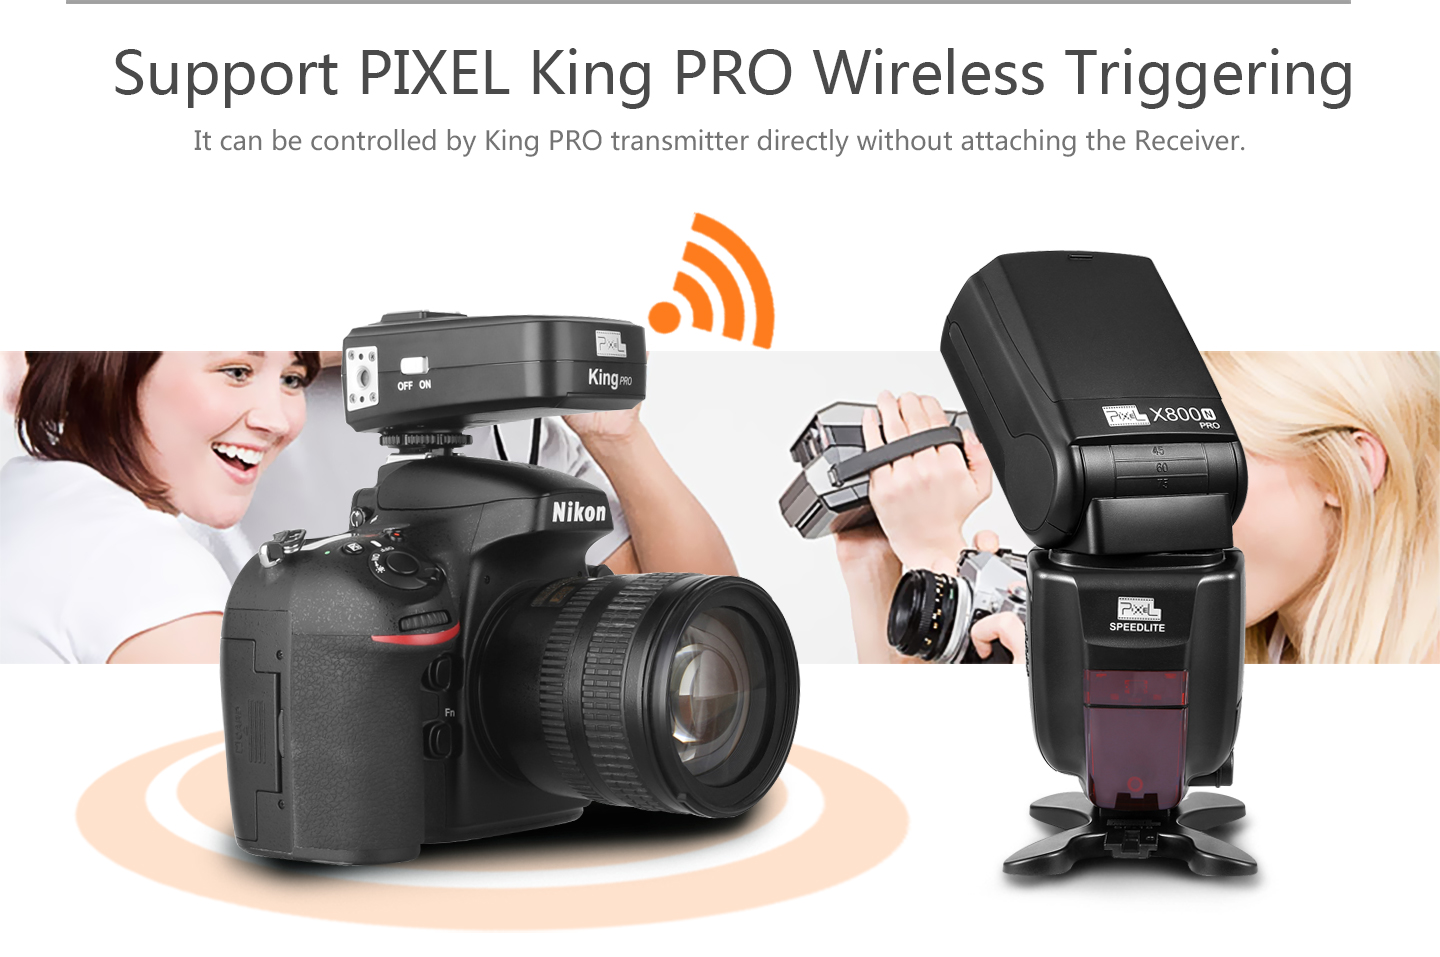 Support PIXEL King PRO Wireless Triggering